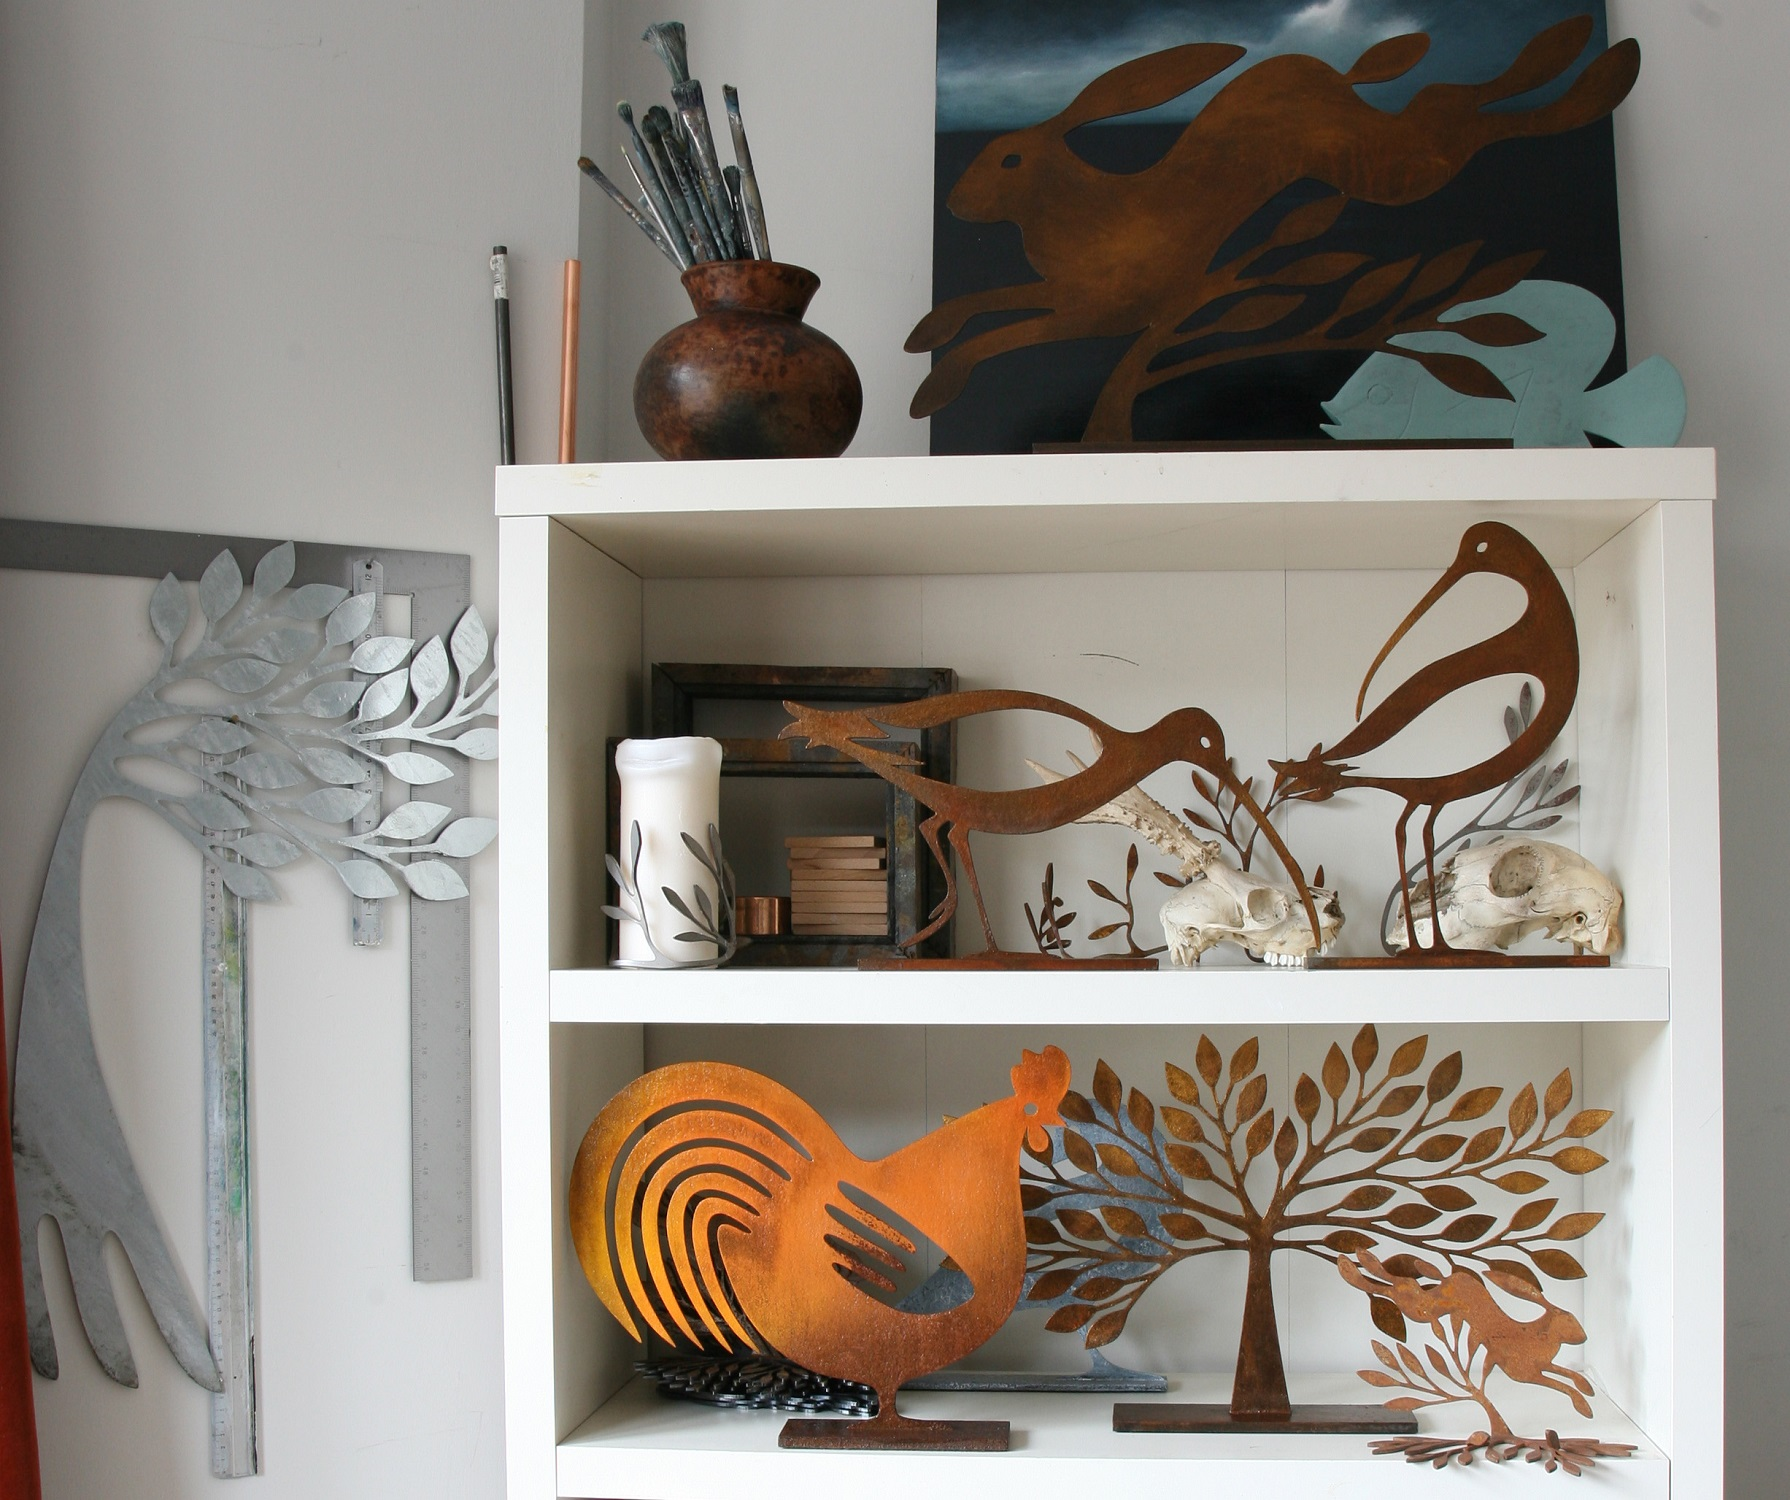 Steel trees, birds, hares and chicken